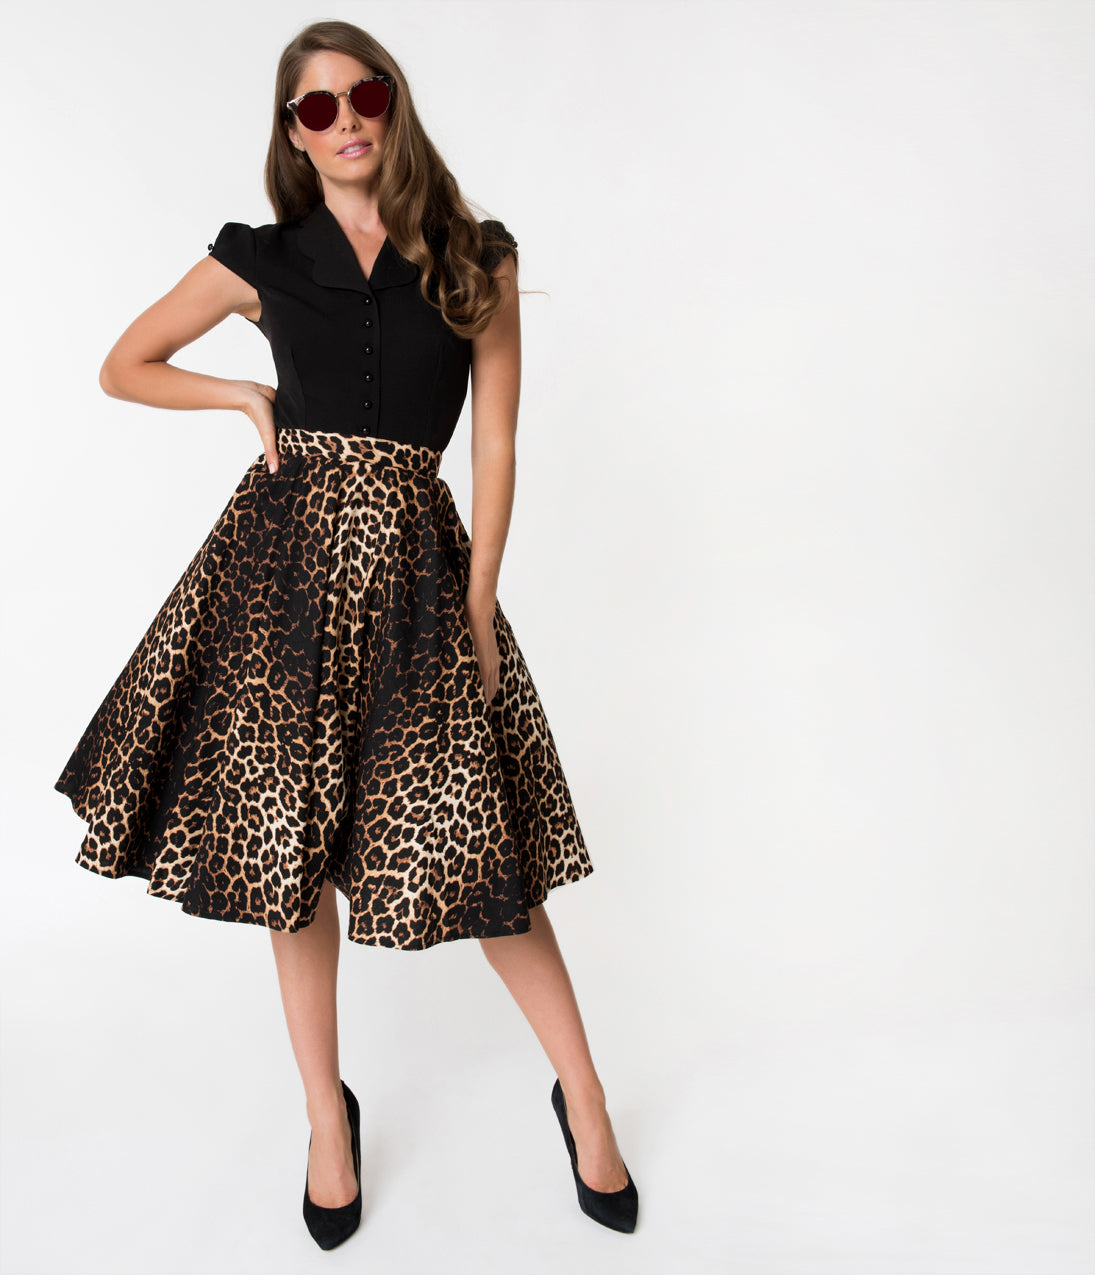 Retro Skirts: Vintage, Pencil, Circle, & Plus Sizes Hell Bunny 1950S Style Leopard Print Cotton Panthera Swing Skirt $48.00 AT vintagedancer.com